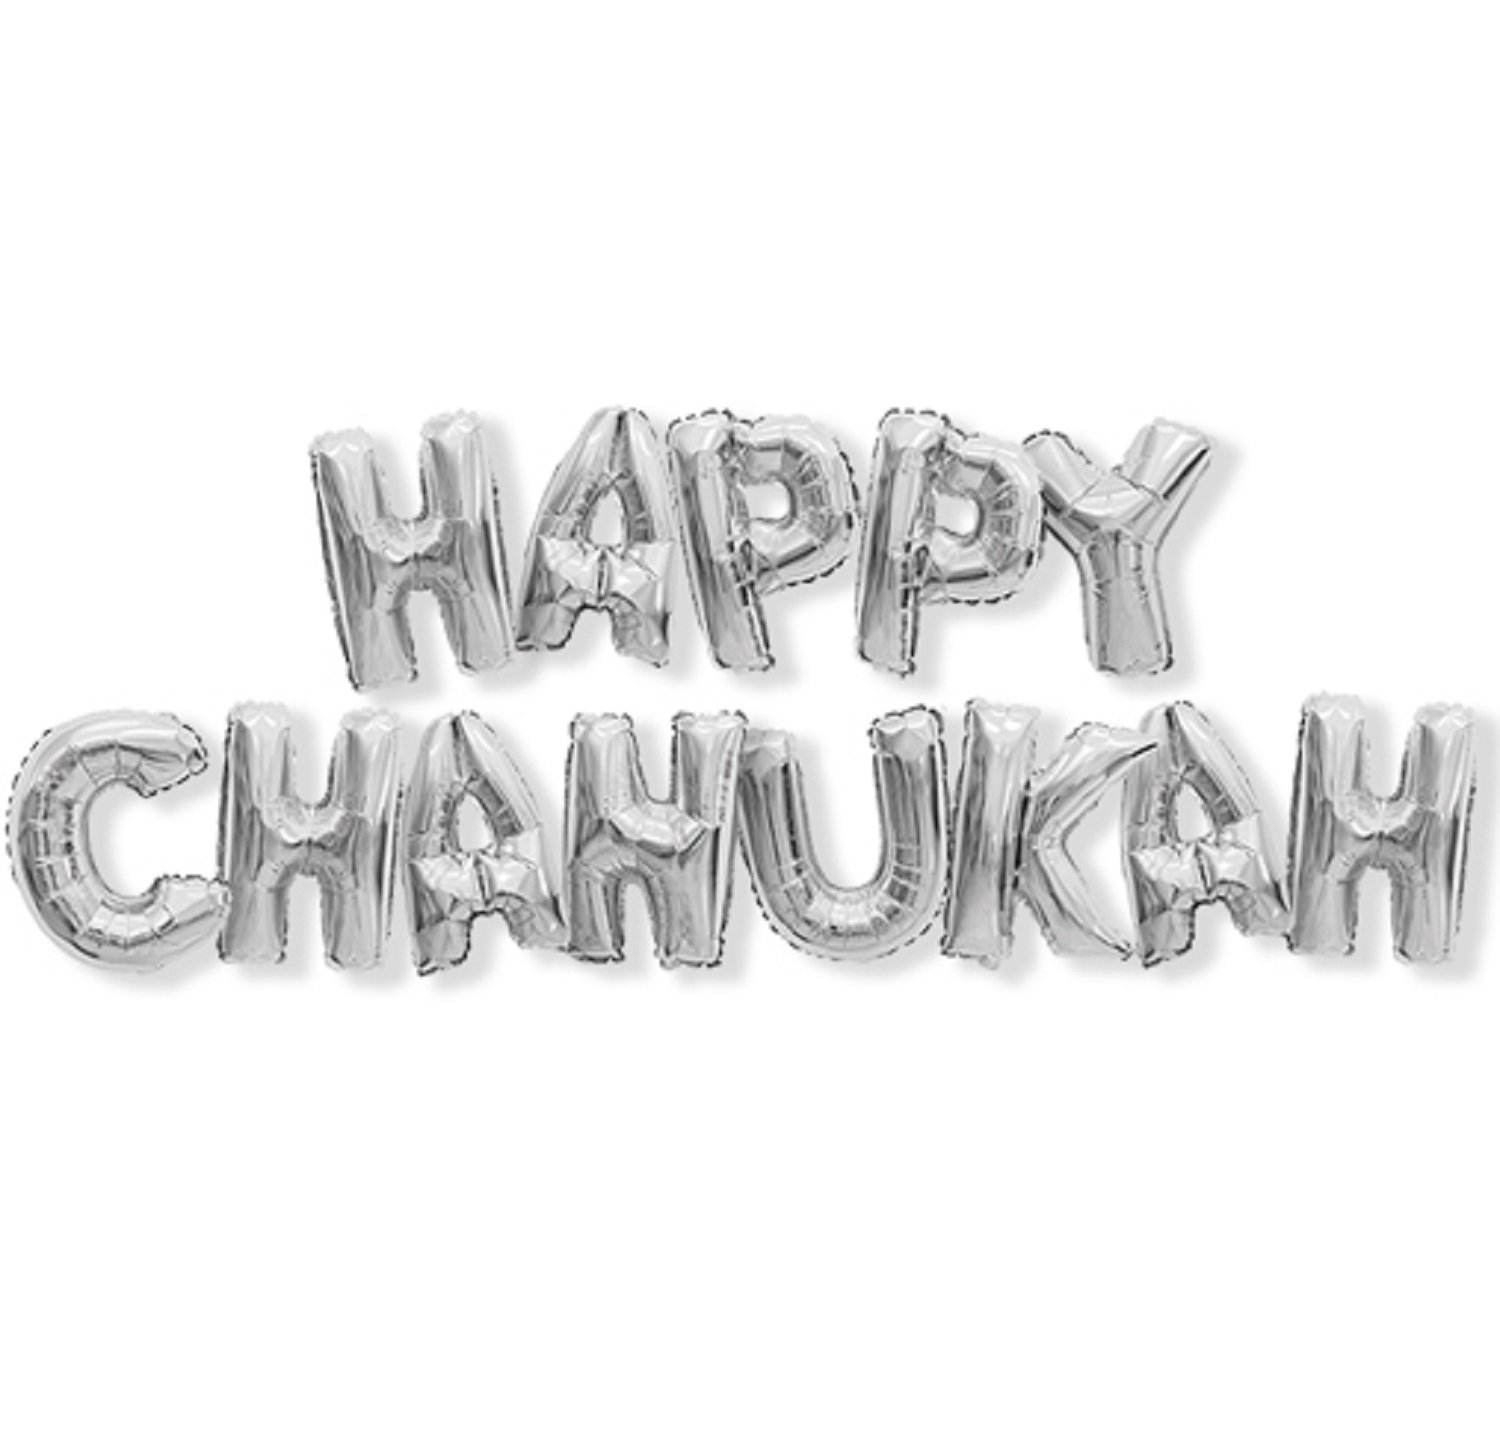 Happy Chanukah Balloon Decoration for Your Hanukkah Party Cazenove